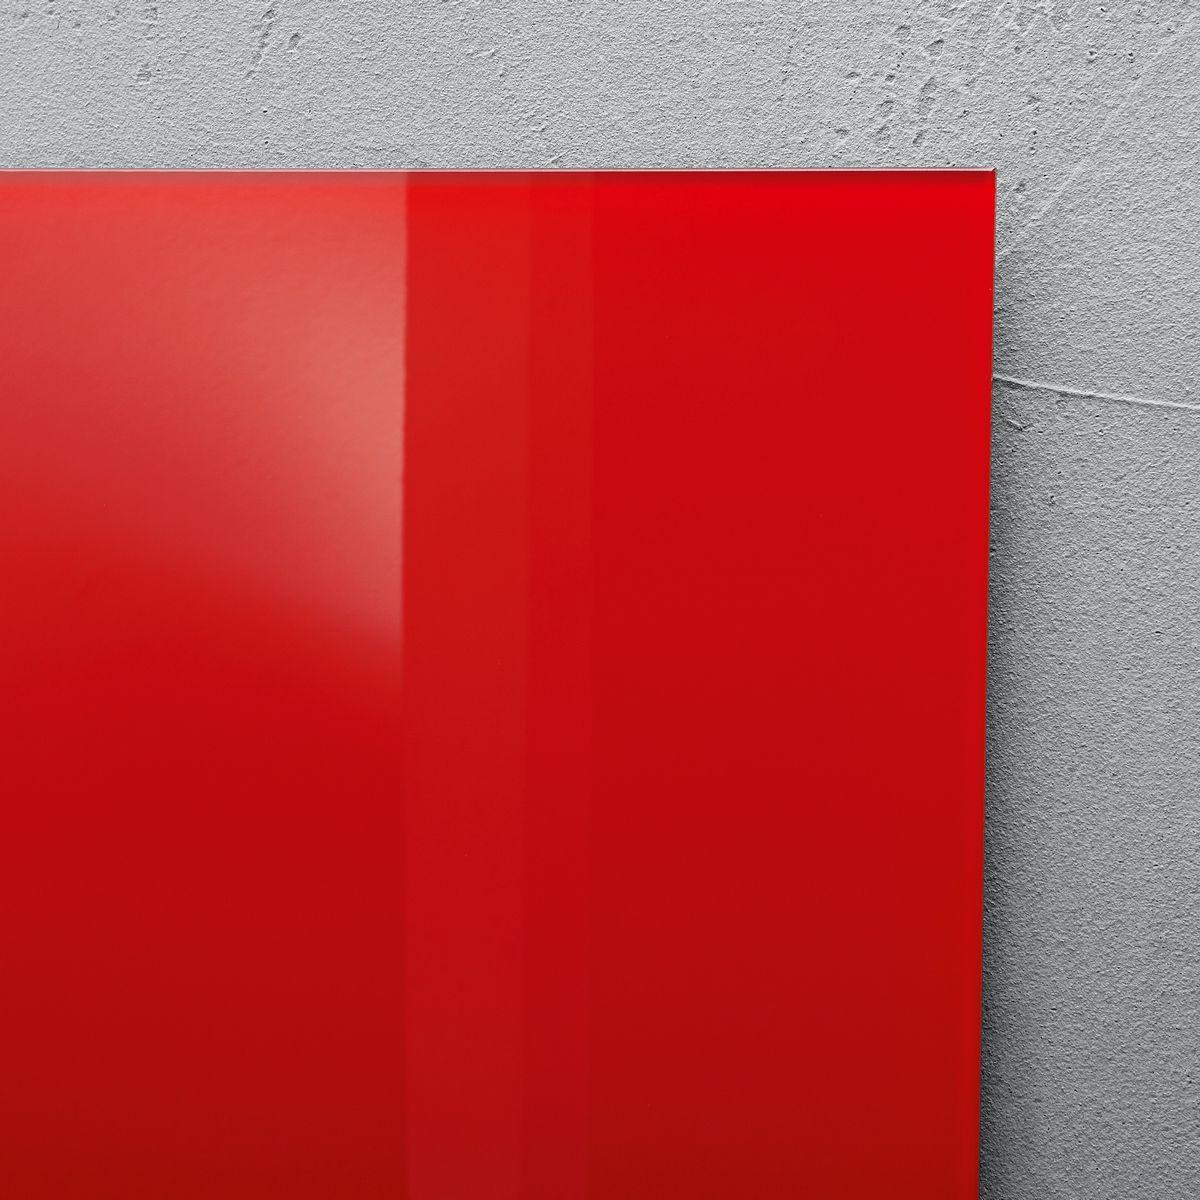 Glasmagnetboard-artverum-Detail-02-rot